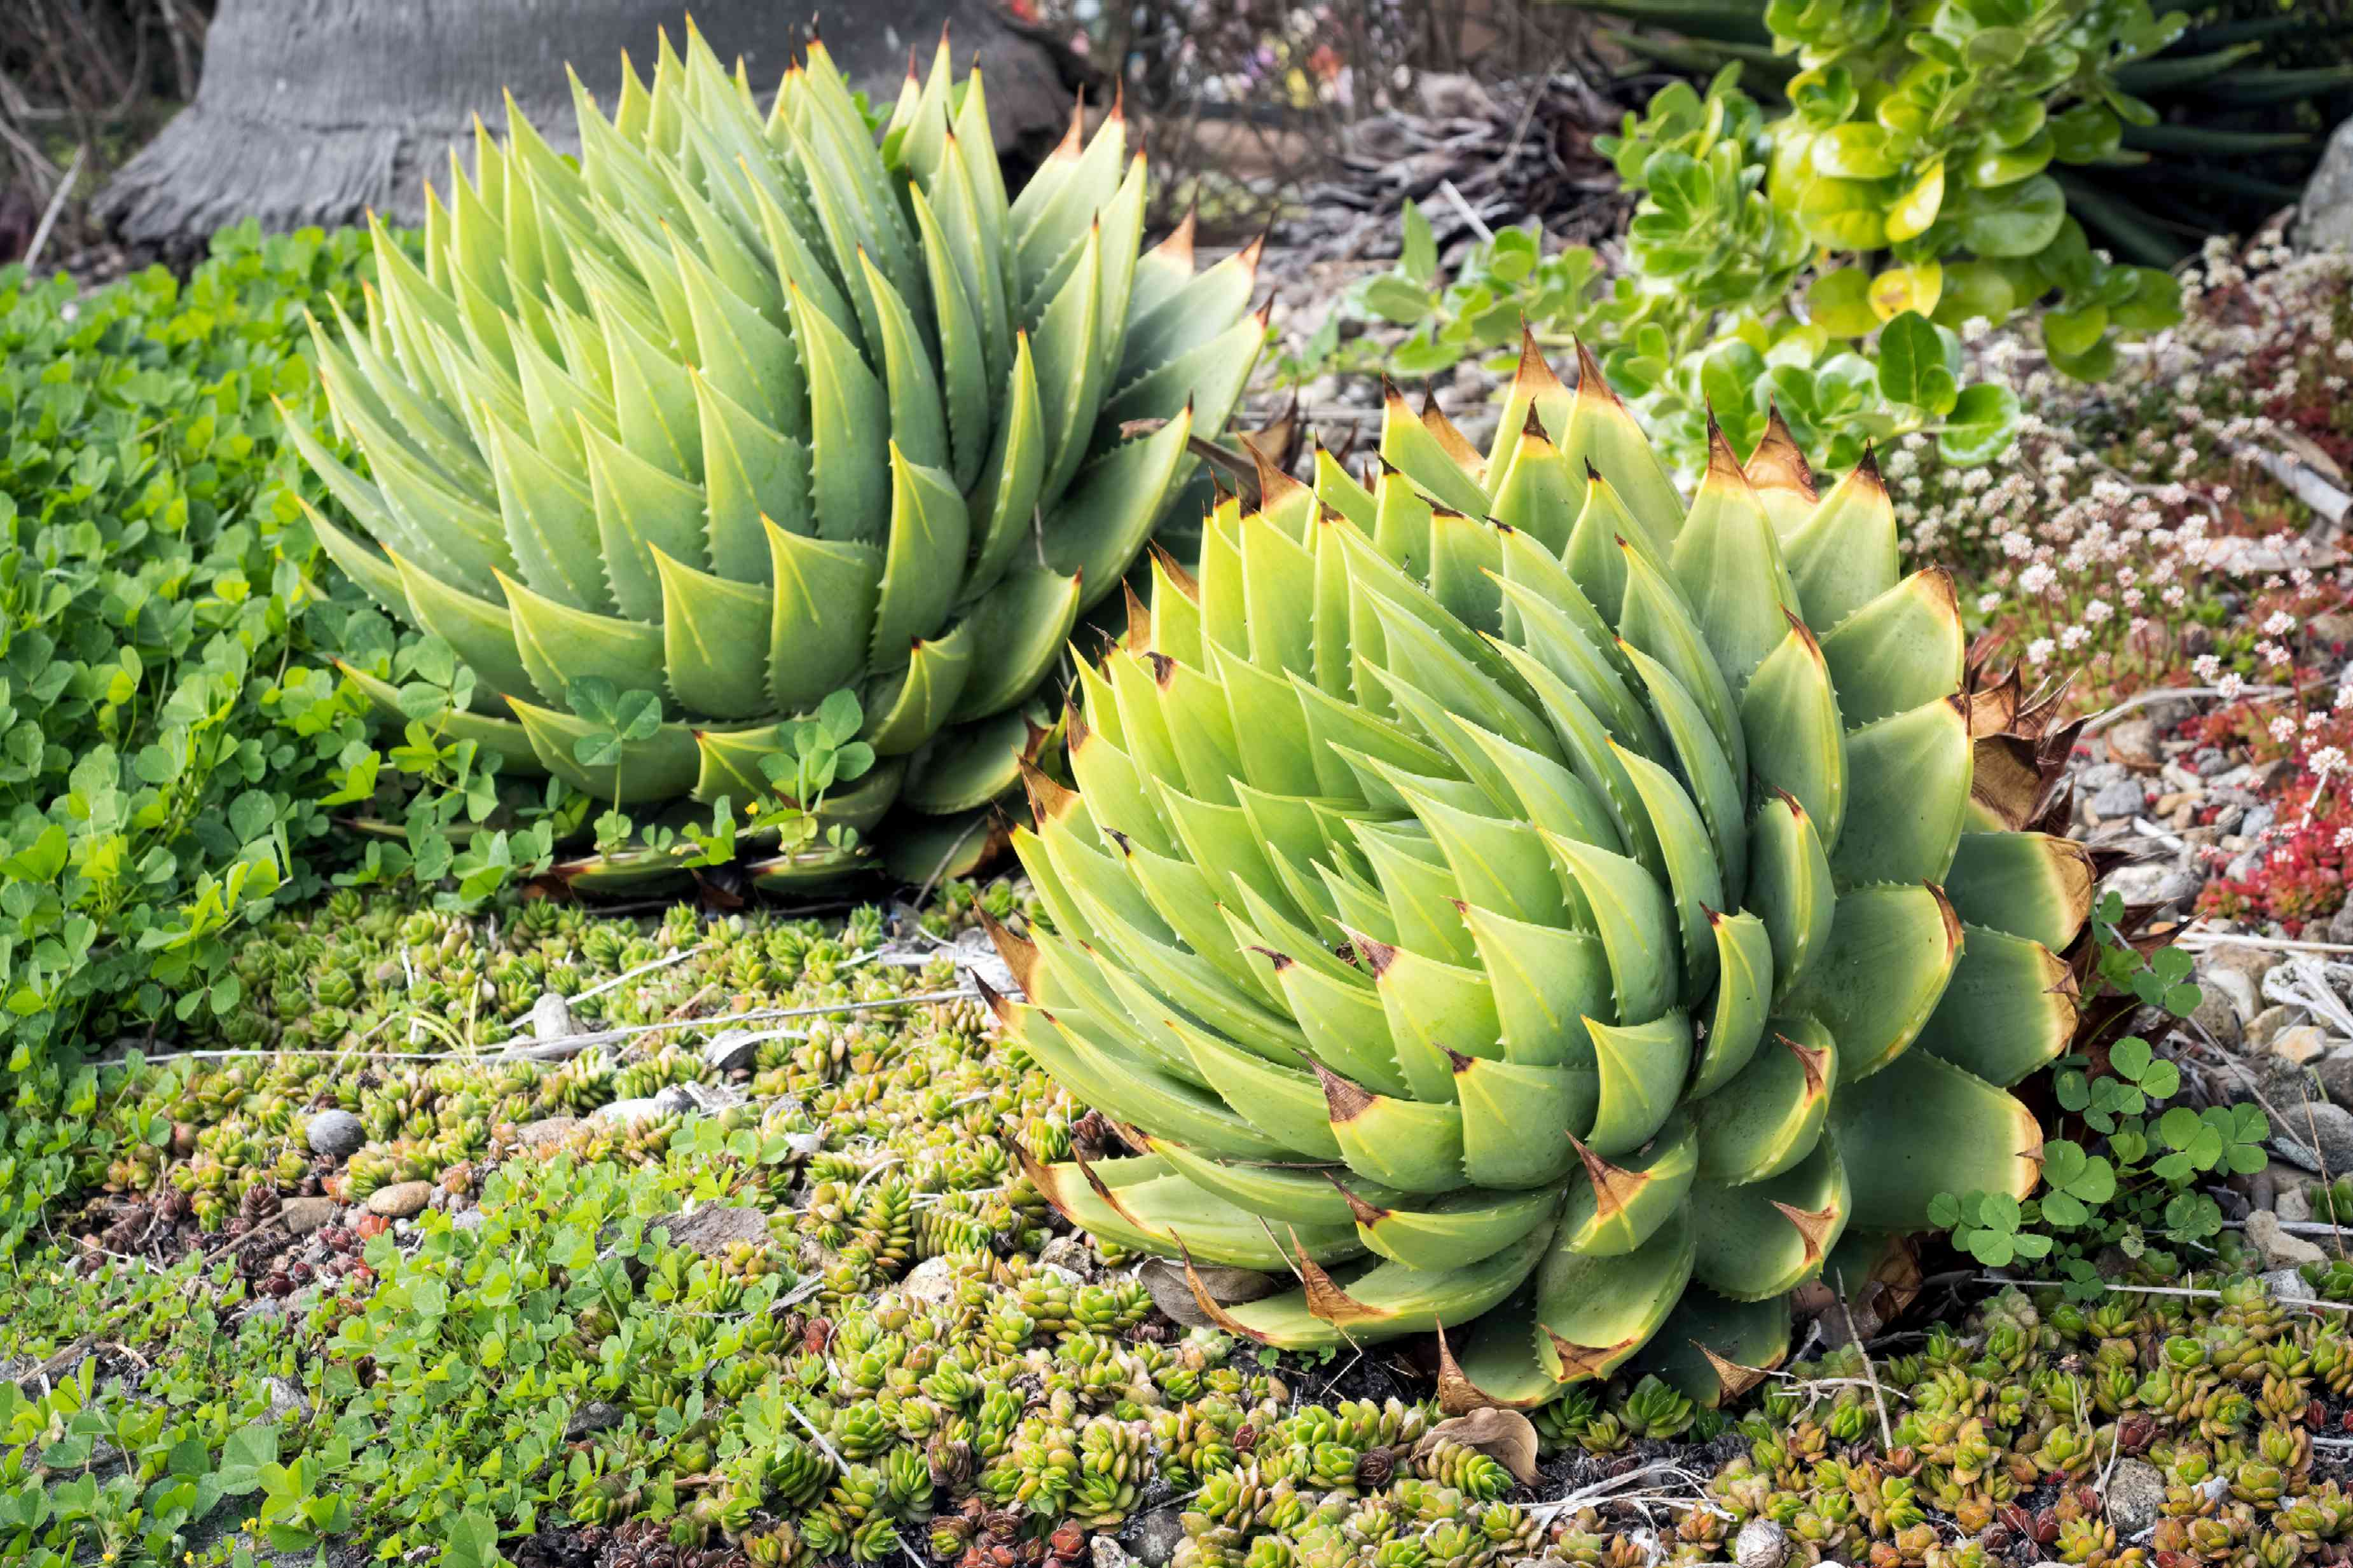 Two spiral aloe vera succulents with thick brown pointed leaves surrounded by groundcover plants